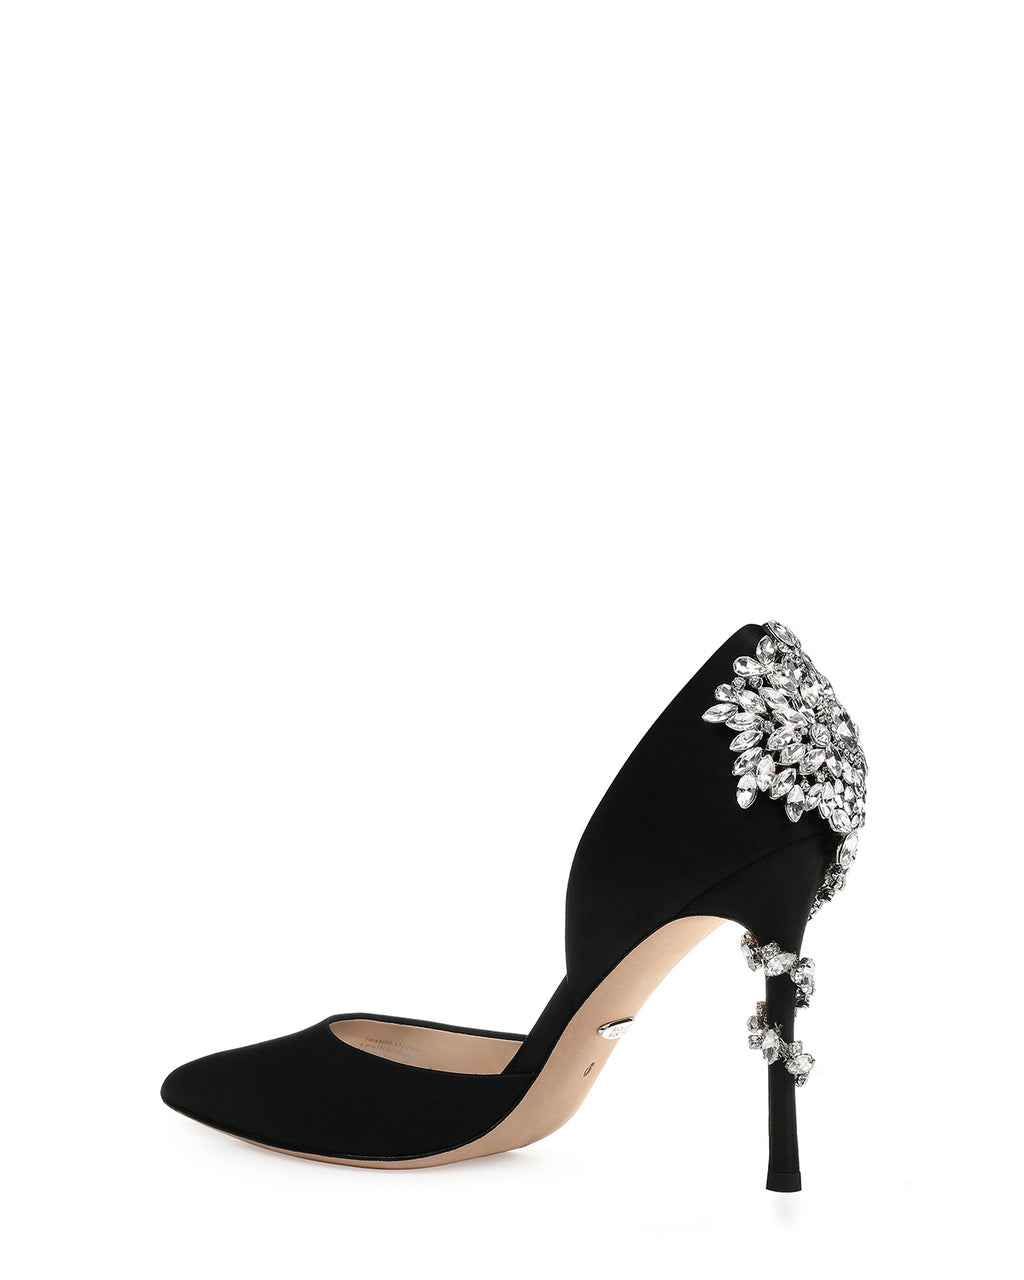 Vogue - Black - New, Shoes, Badgley Mischka - Eternal Bridal